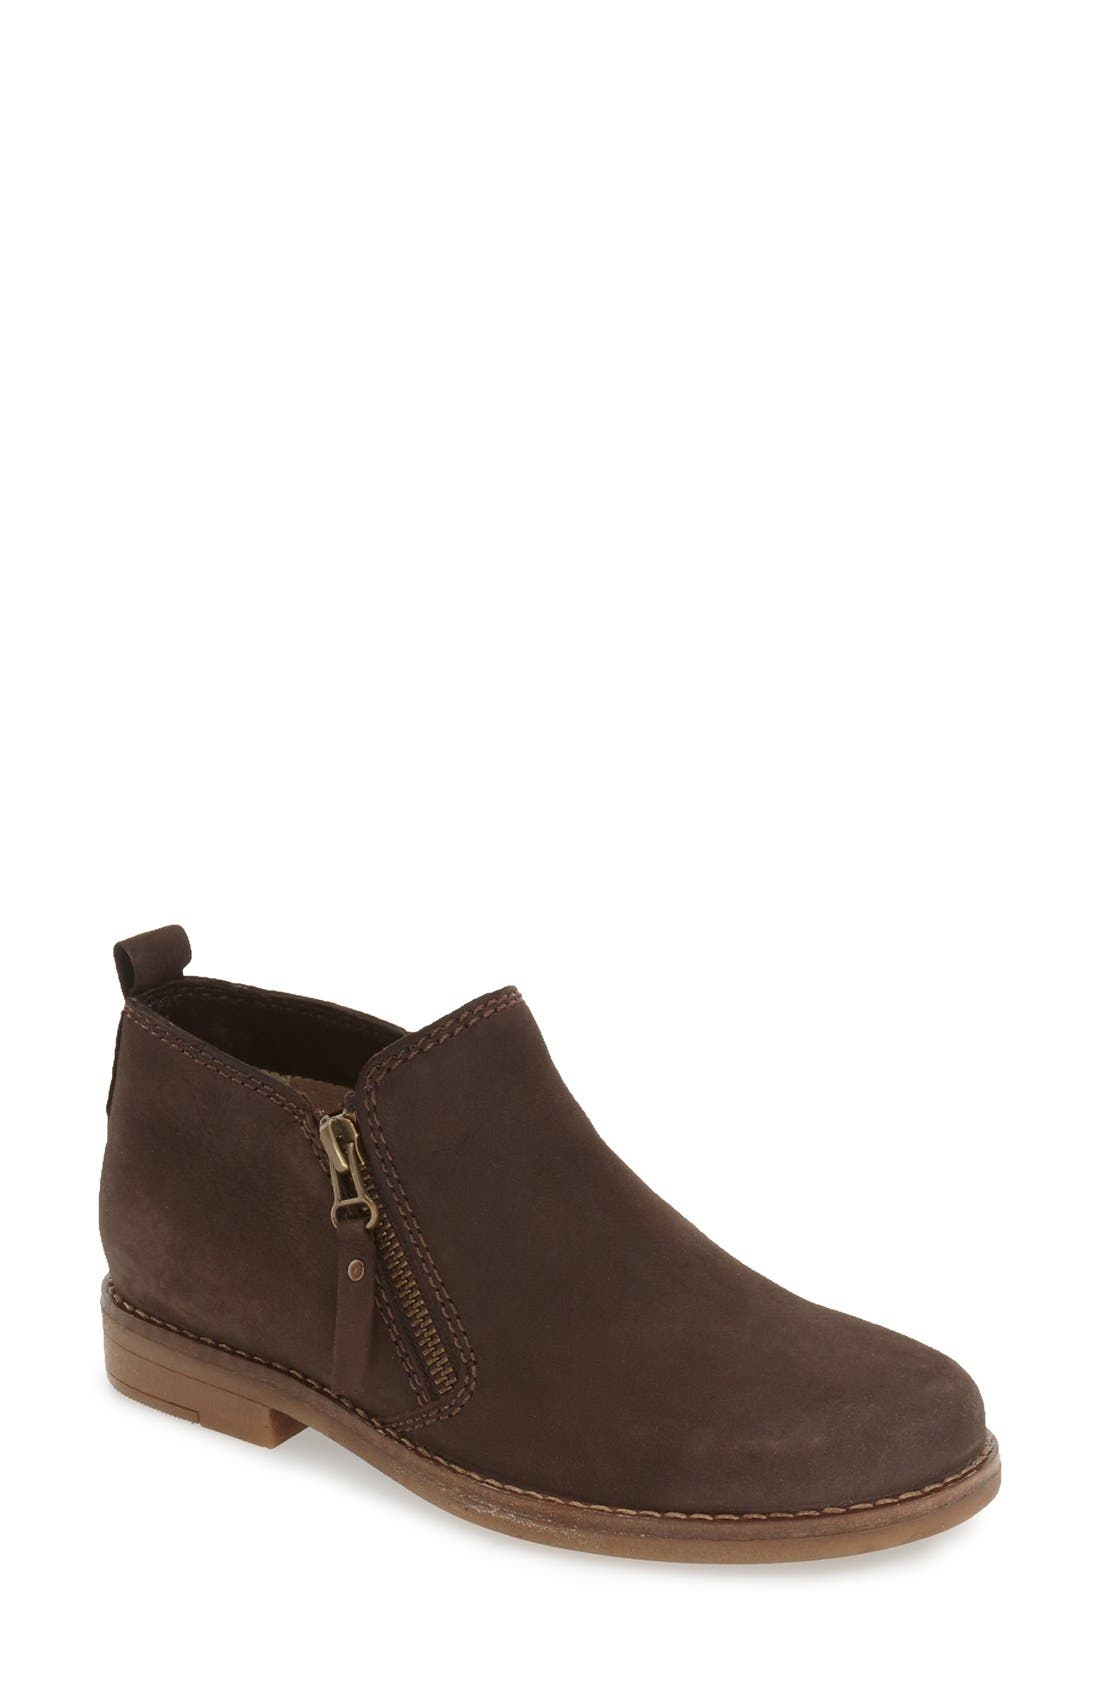 'Mazin Cayto' Bootie,                         Main,                         color, Brown Nubuck Leather